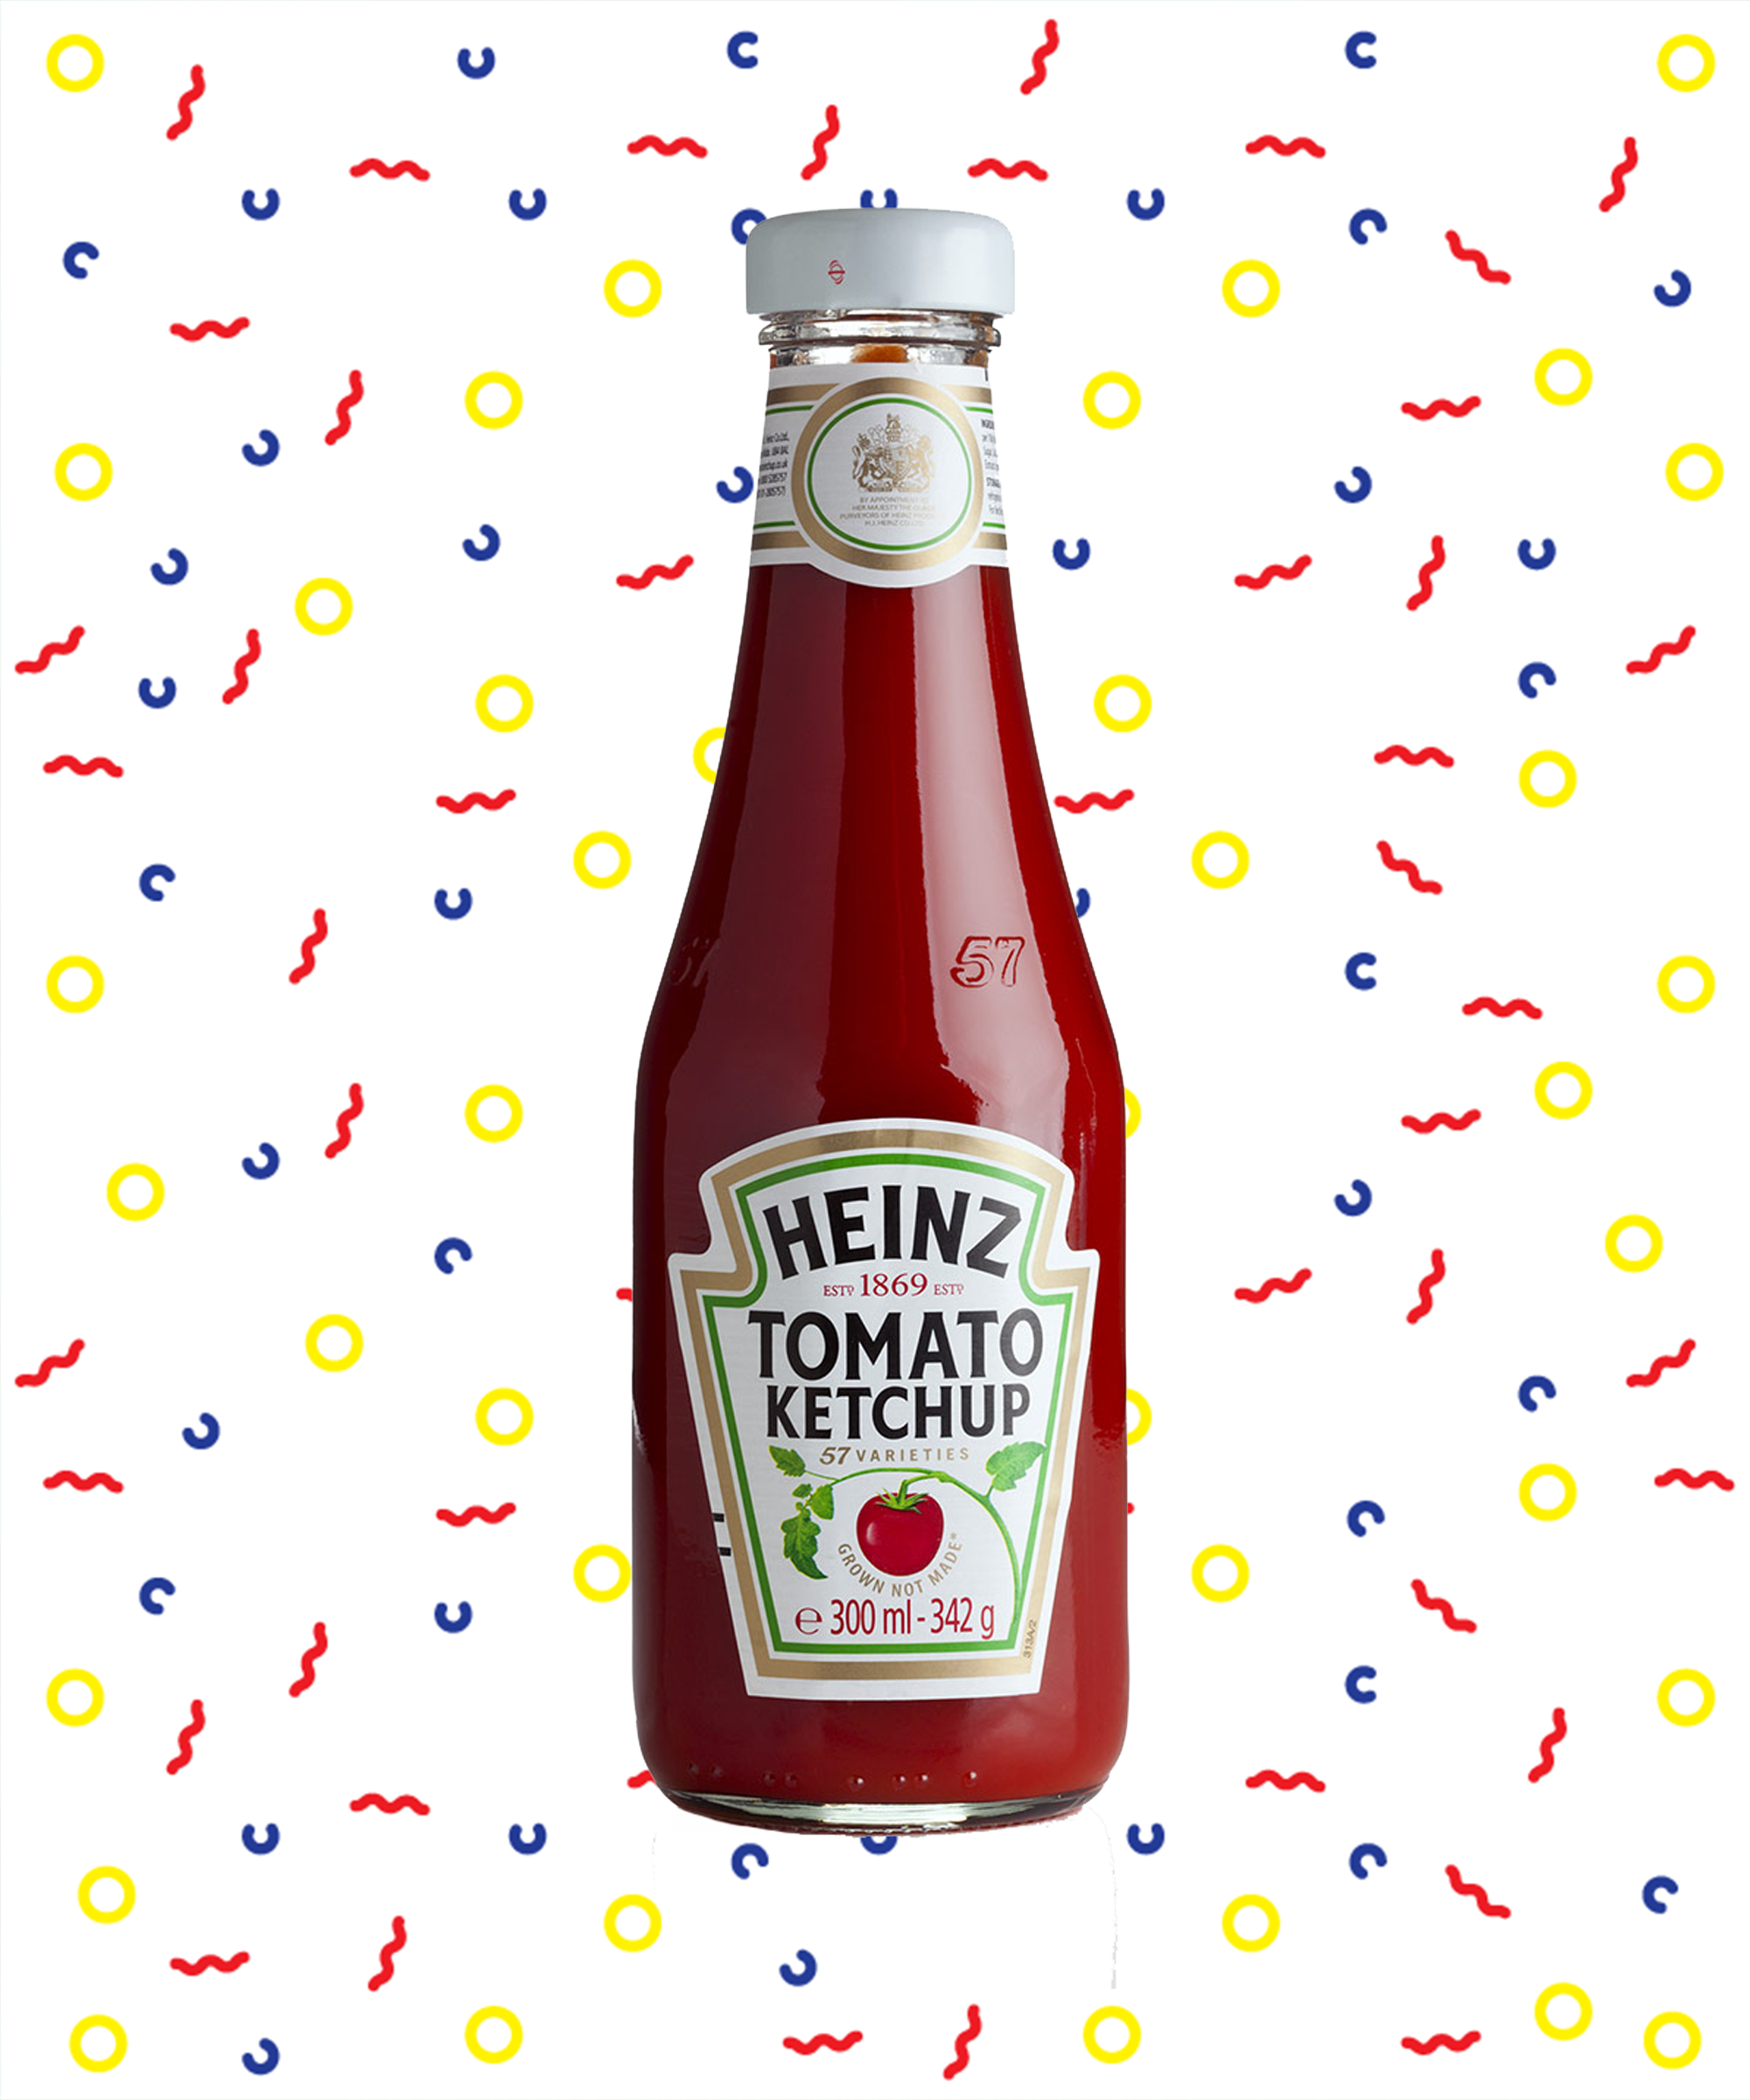 We Ve Been Using Ketchup Bottles Wrong Our Whole Lives Ketchup Bottles Ketchup Bottle Ketchup